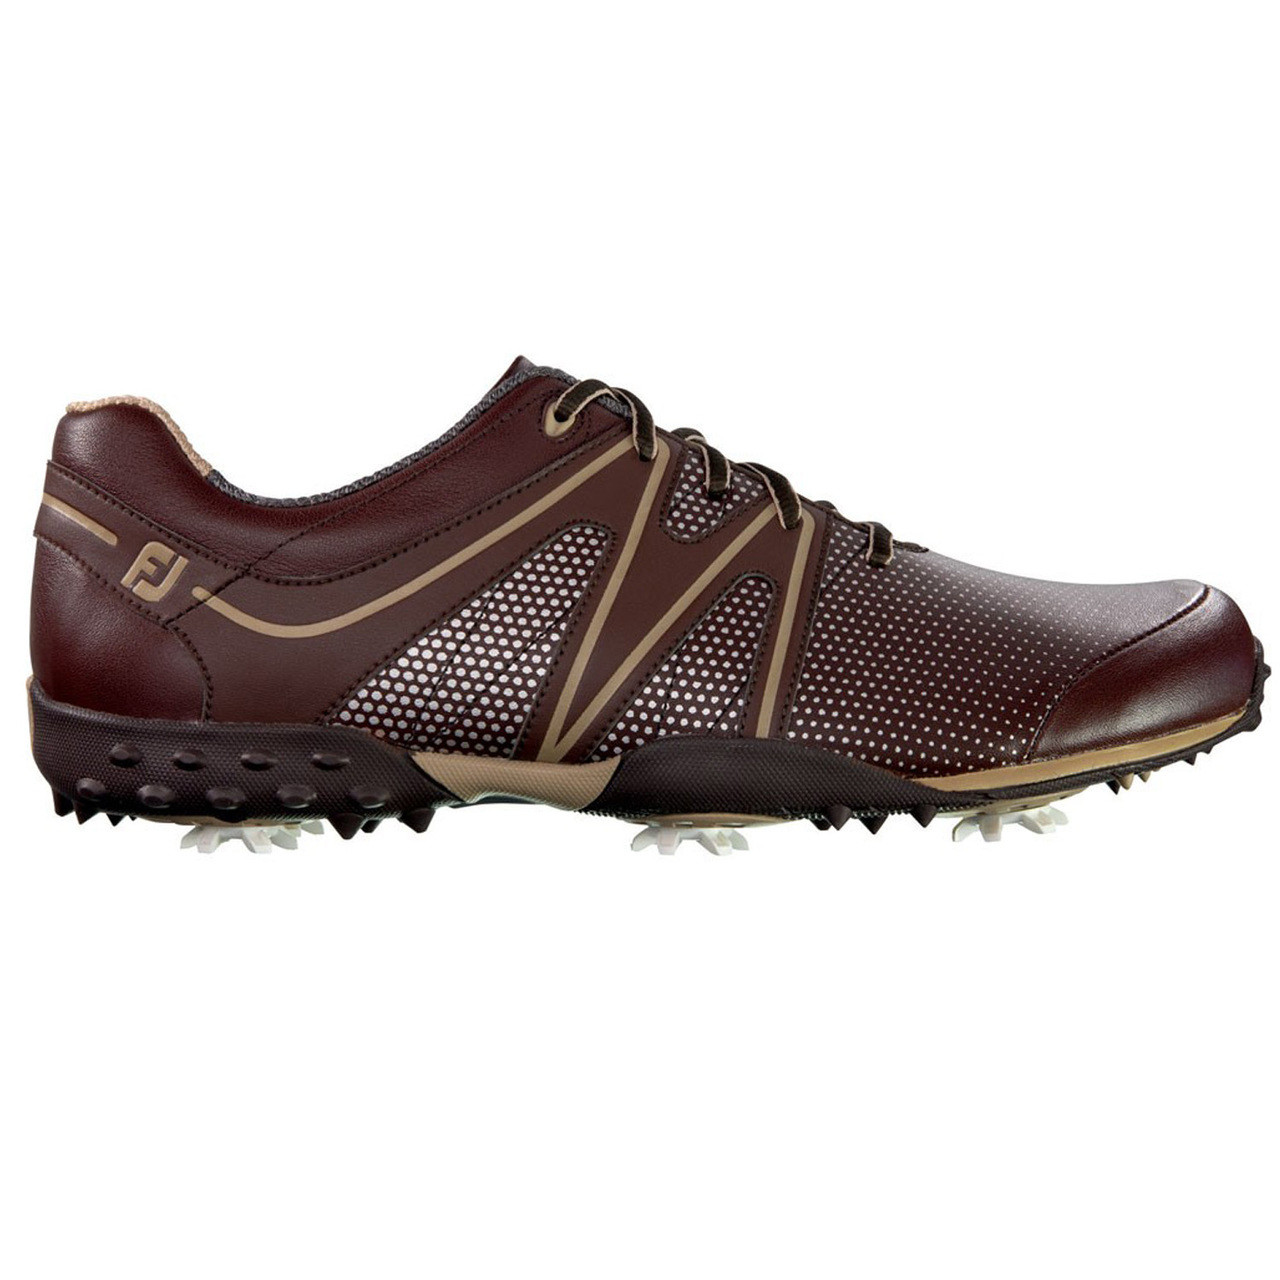 Wide Golf Shoes Clearance